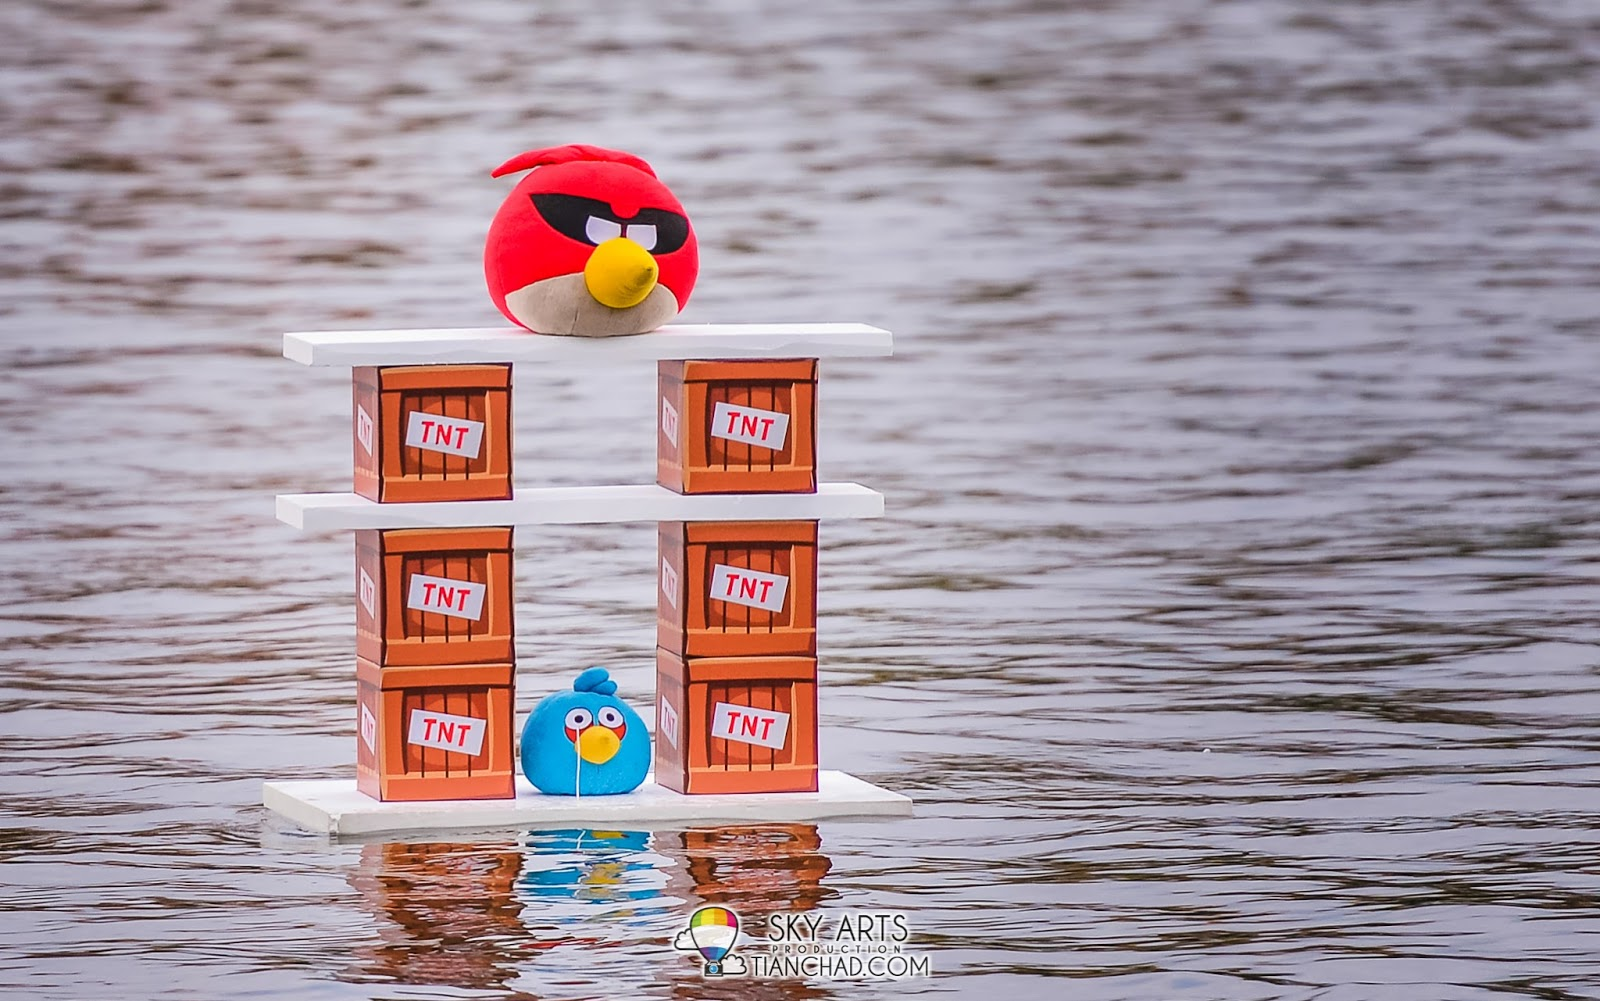 Angry Birds with TNT blocks floating on the water surface